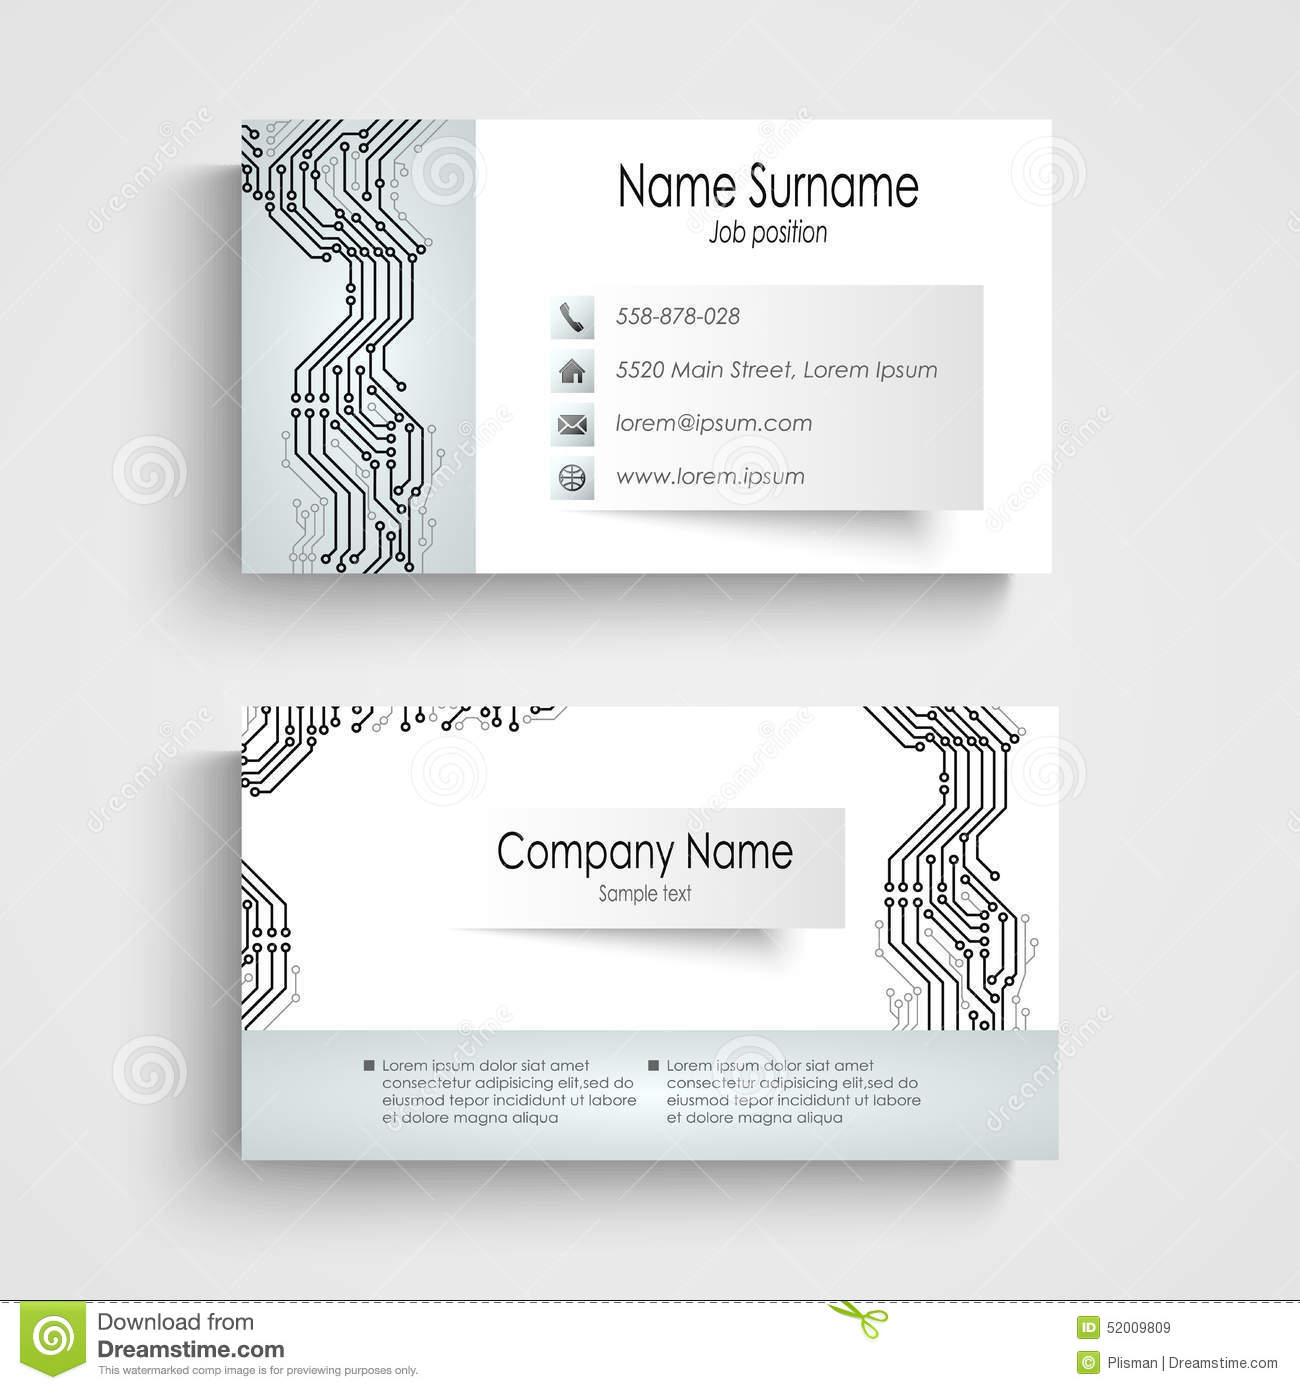 Modern business card with printed circuit board stock vector download modern business card with printed circuit board stock vector illustration of retail design colourmoves